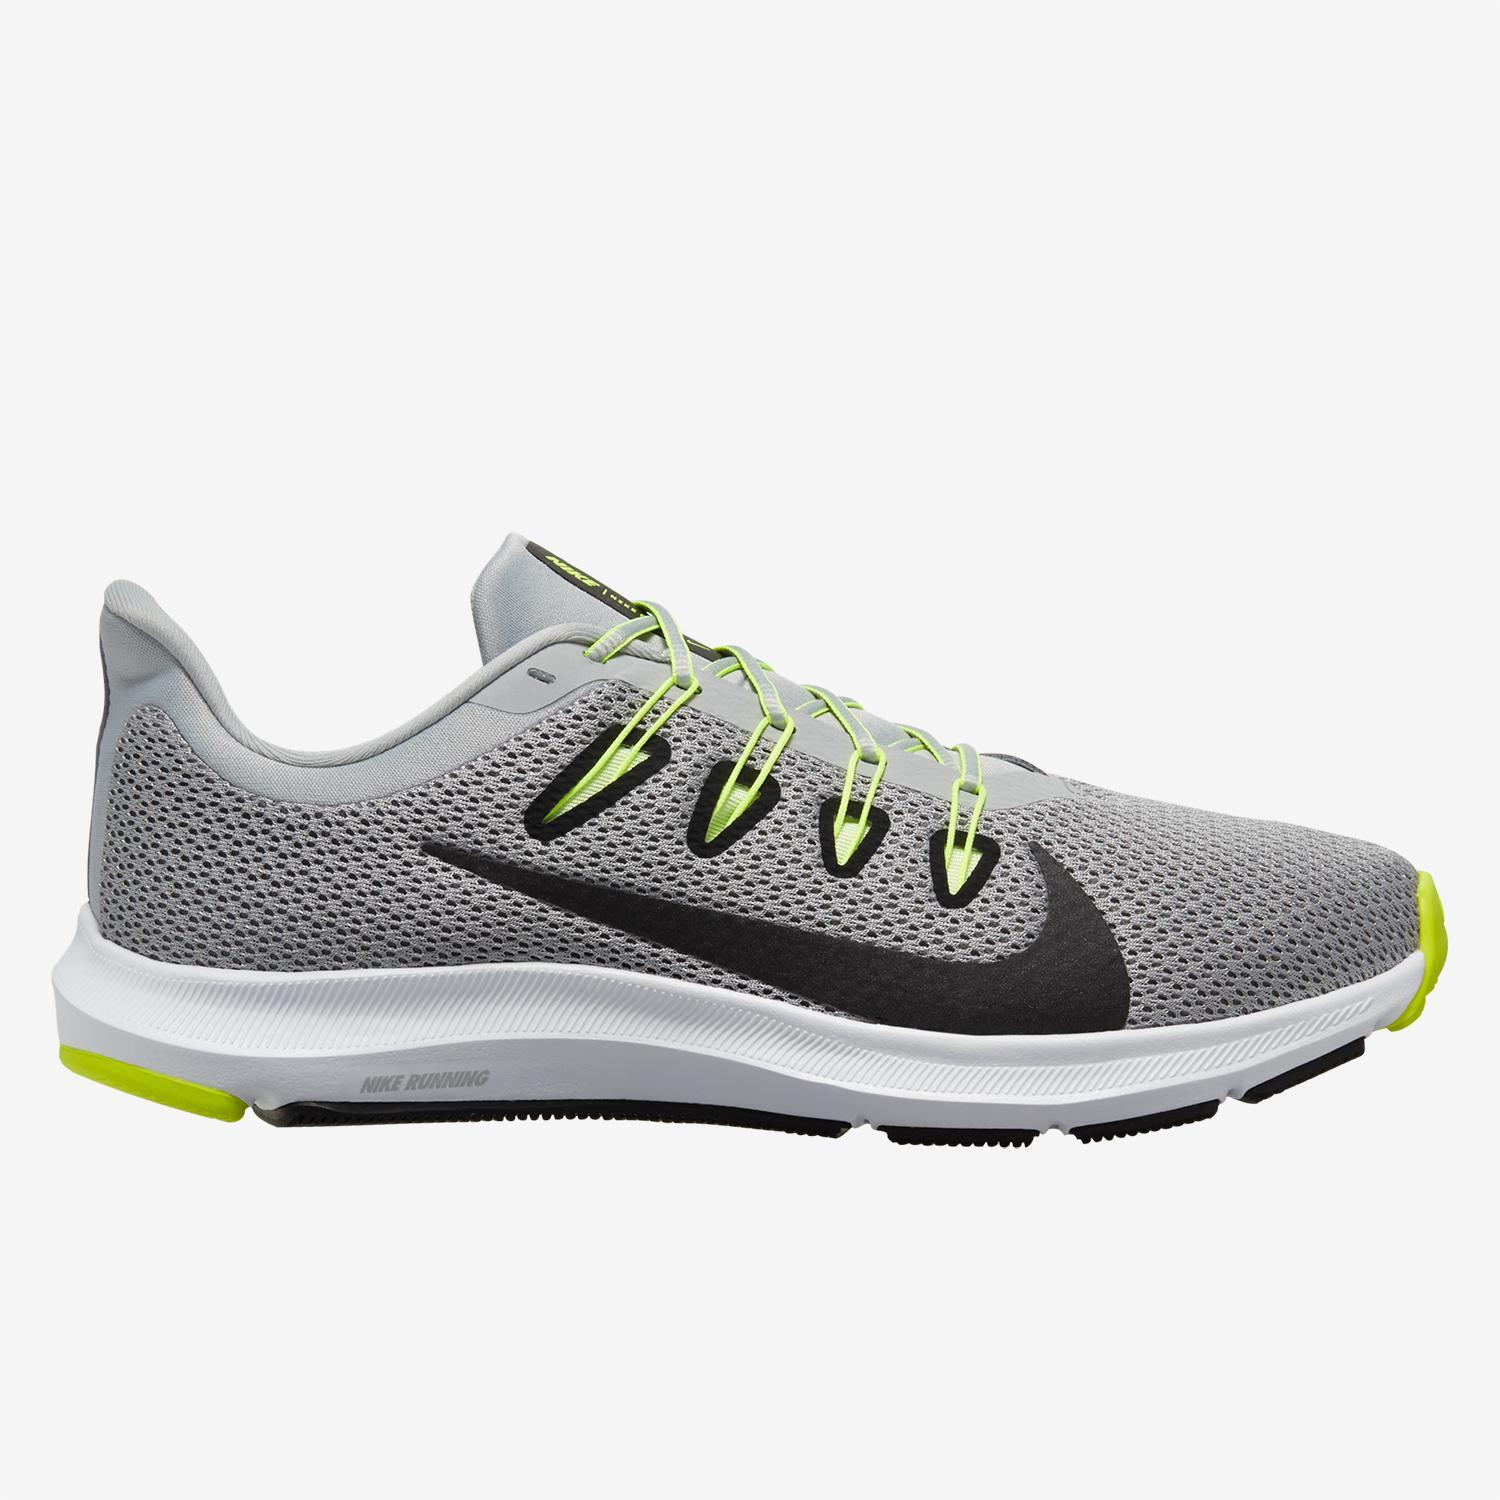 Nike Quest 2 - Grises - Zapatillas Running Hombre | Sprinter